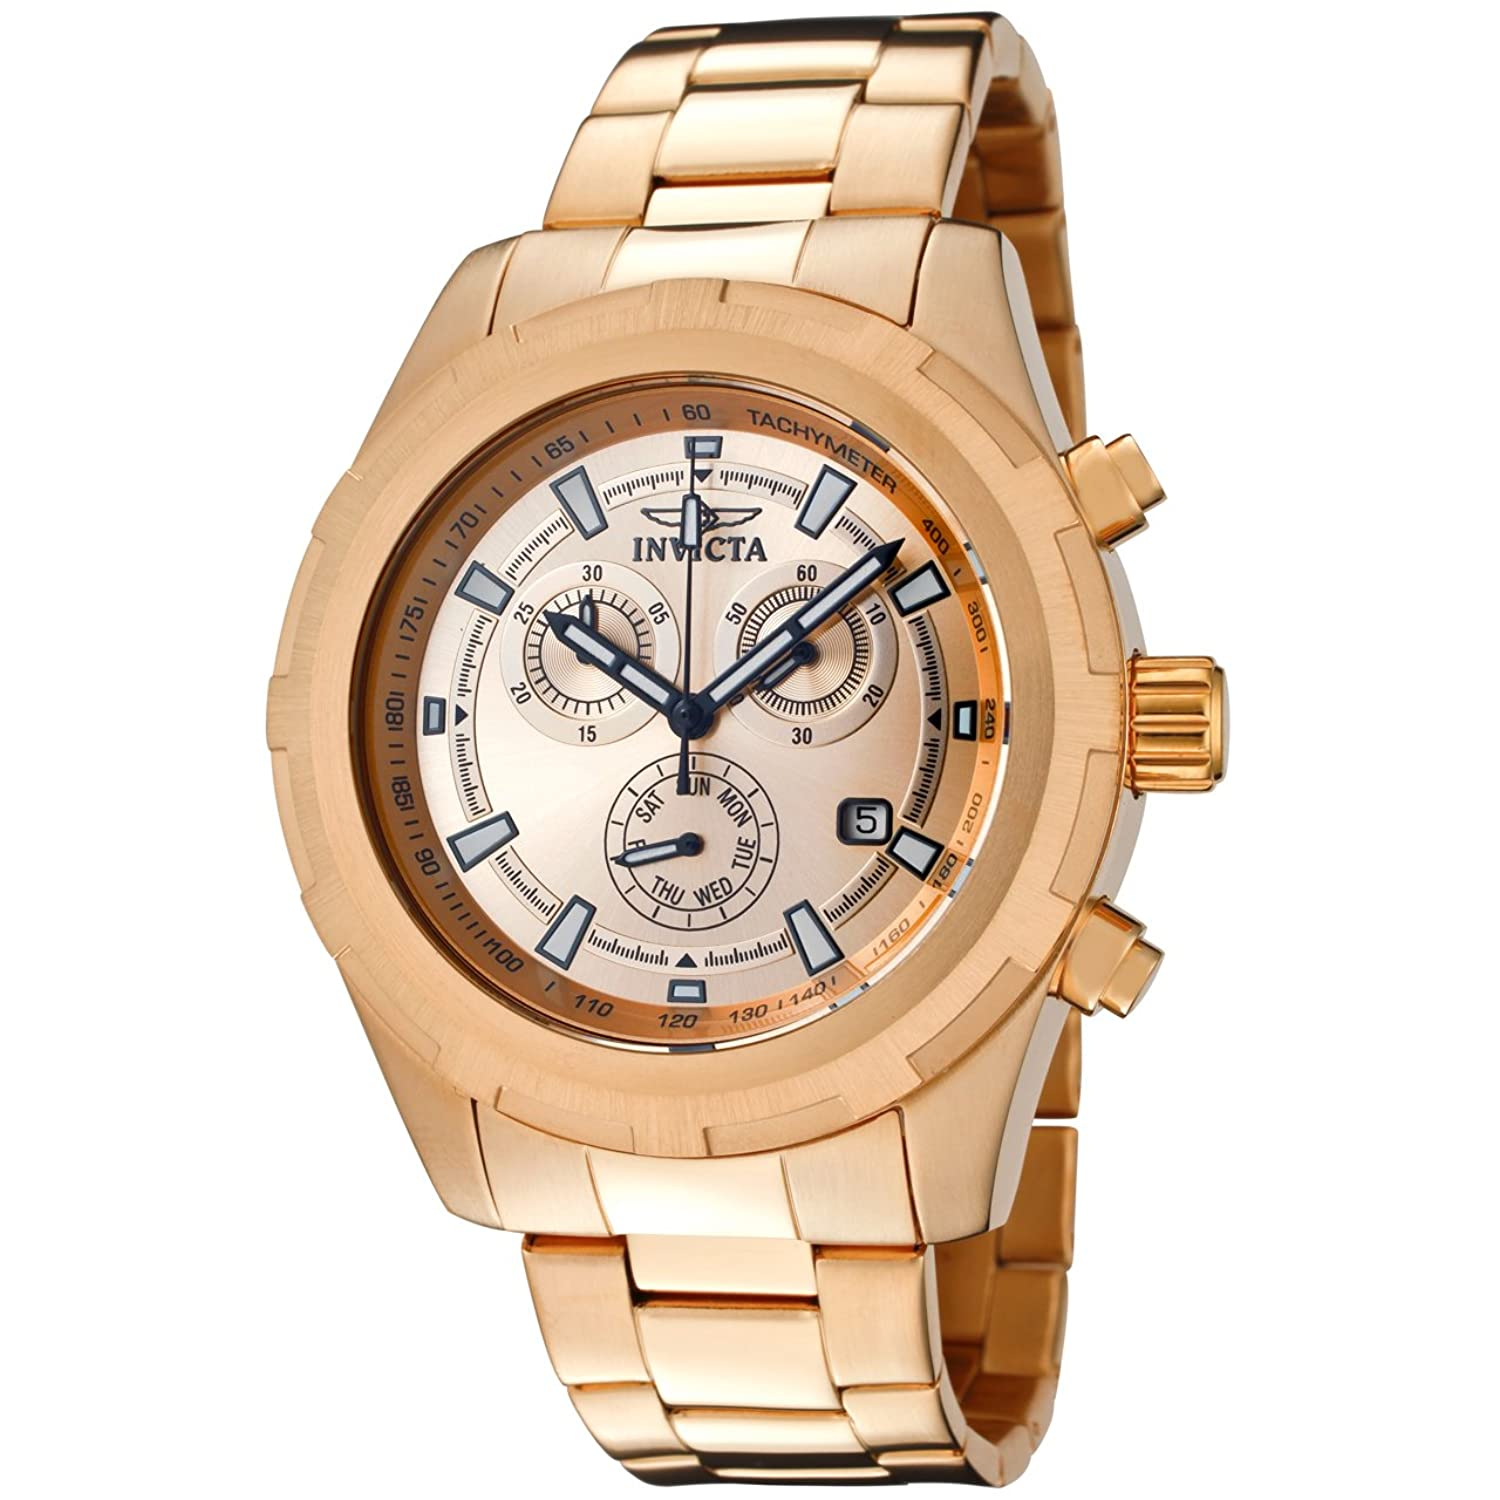 99ece39c8 Invicta Men s 1562 Specialty Collection Swiss Chronograph Watch ...